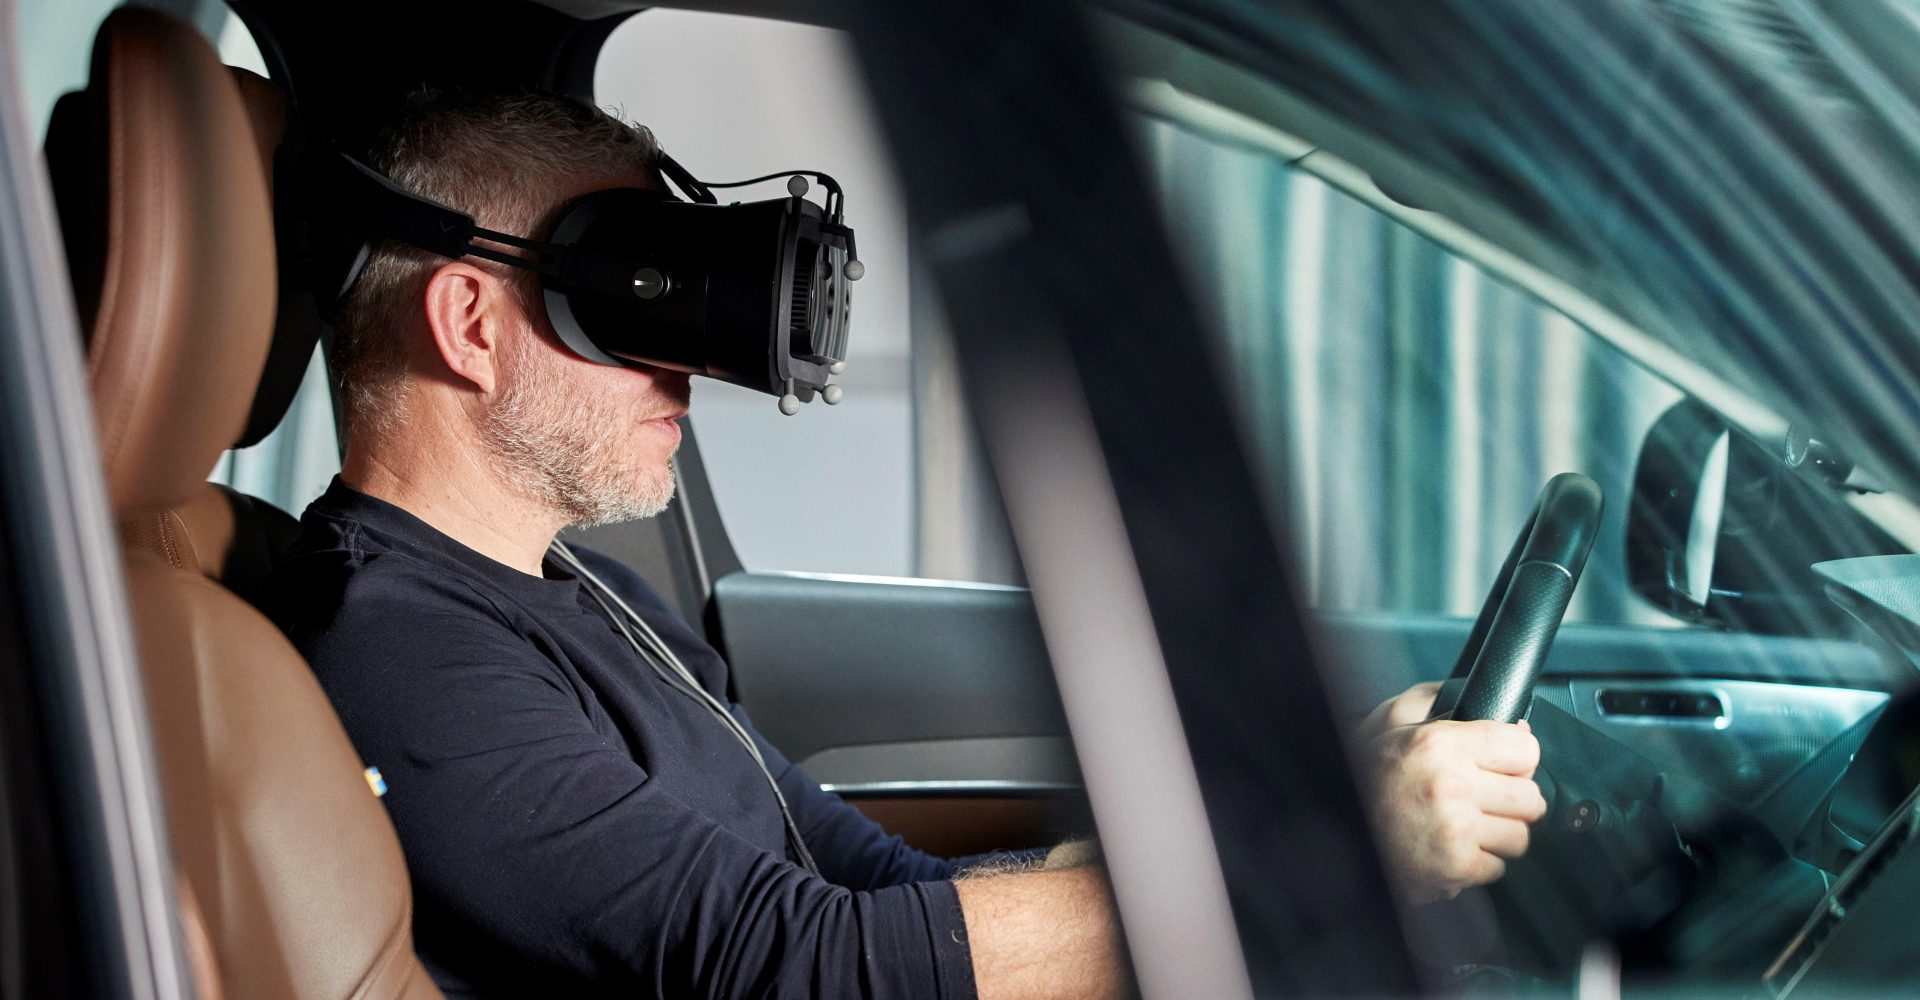 Volvo uses gaming technology to improve vehicle safety